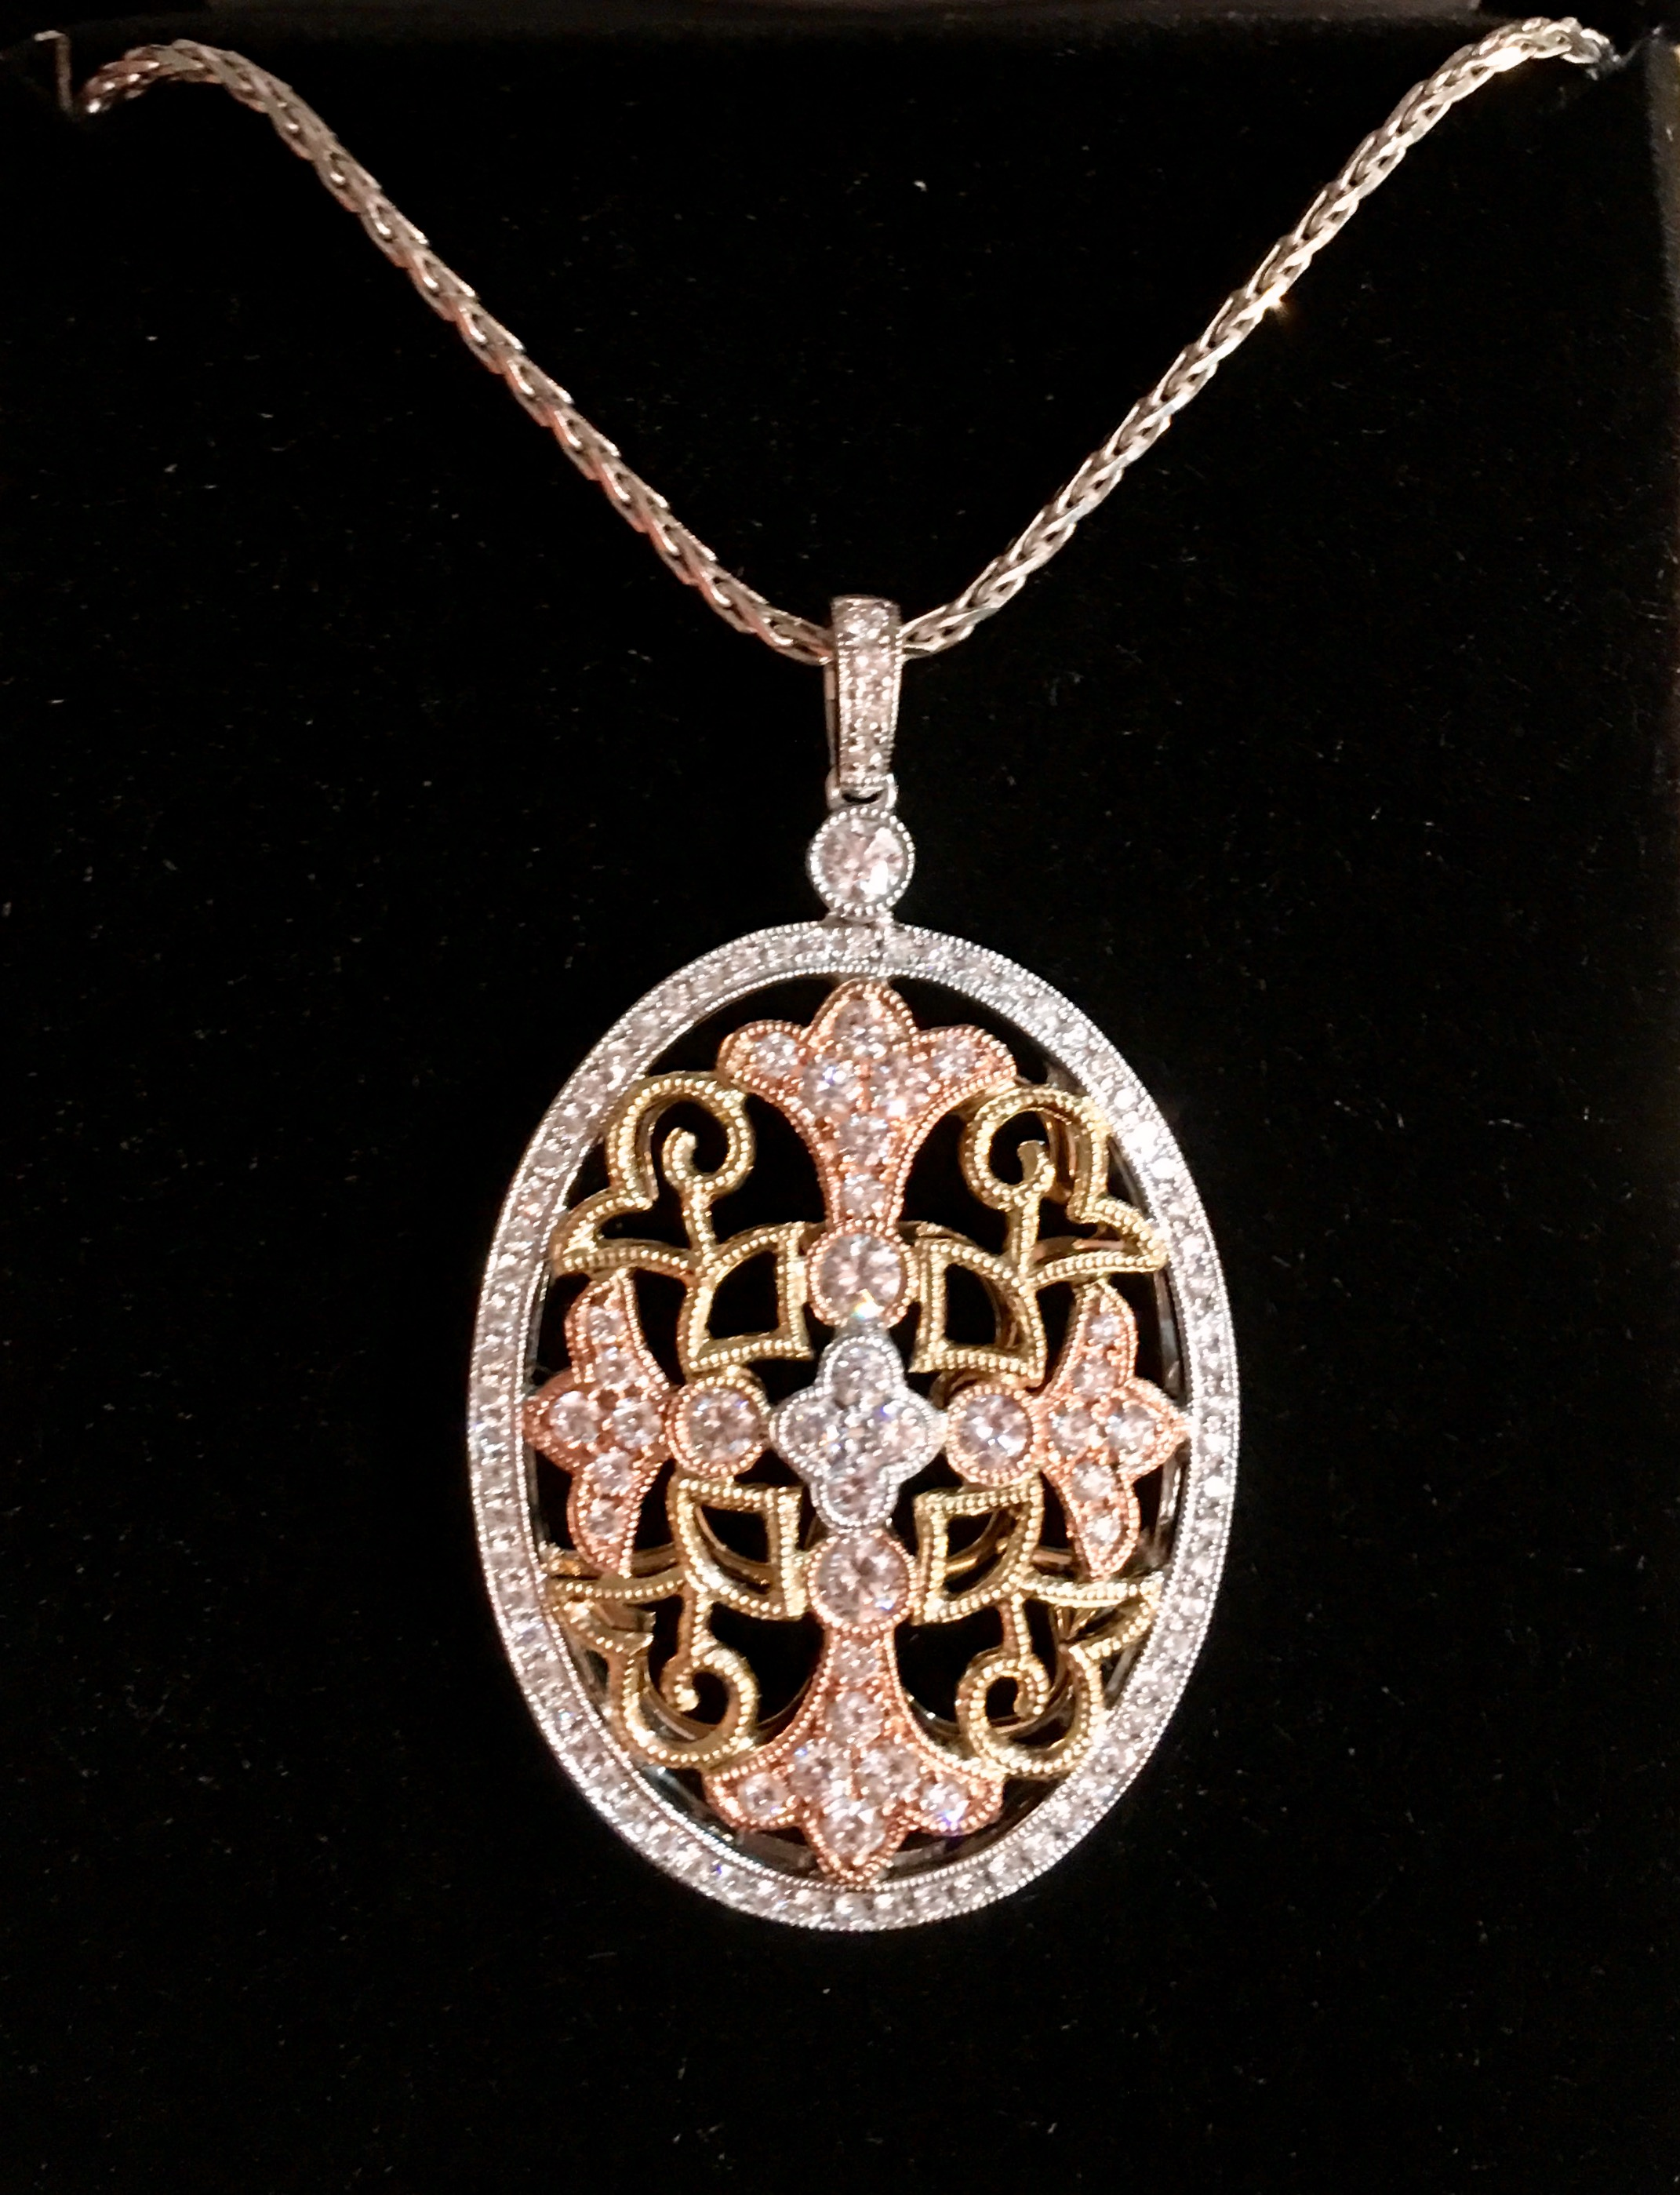 This 14k tricolor pendant is set with 105 round diamonds with a combined total weight of 1.07cts in graceful filigree.